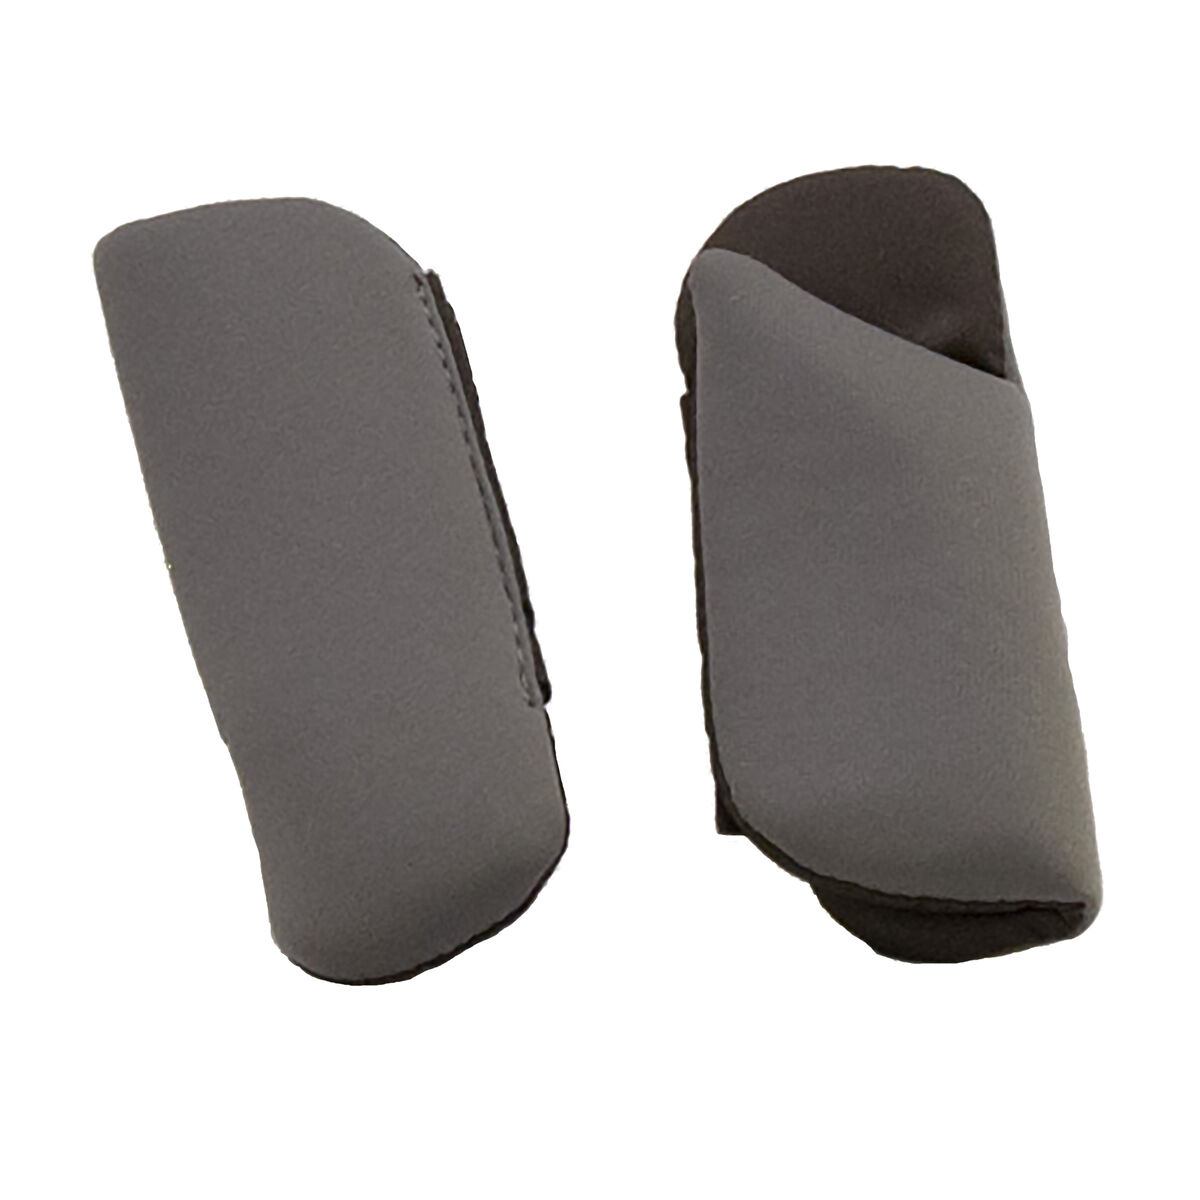 chicco chicco nextfit convertible car seat shoulder pads. Black Bedroom Furniture Sets. Home Design Ideas